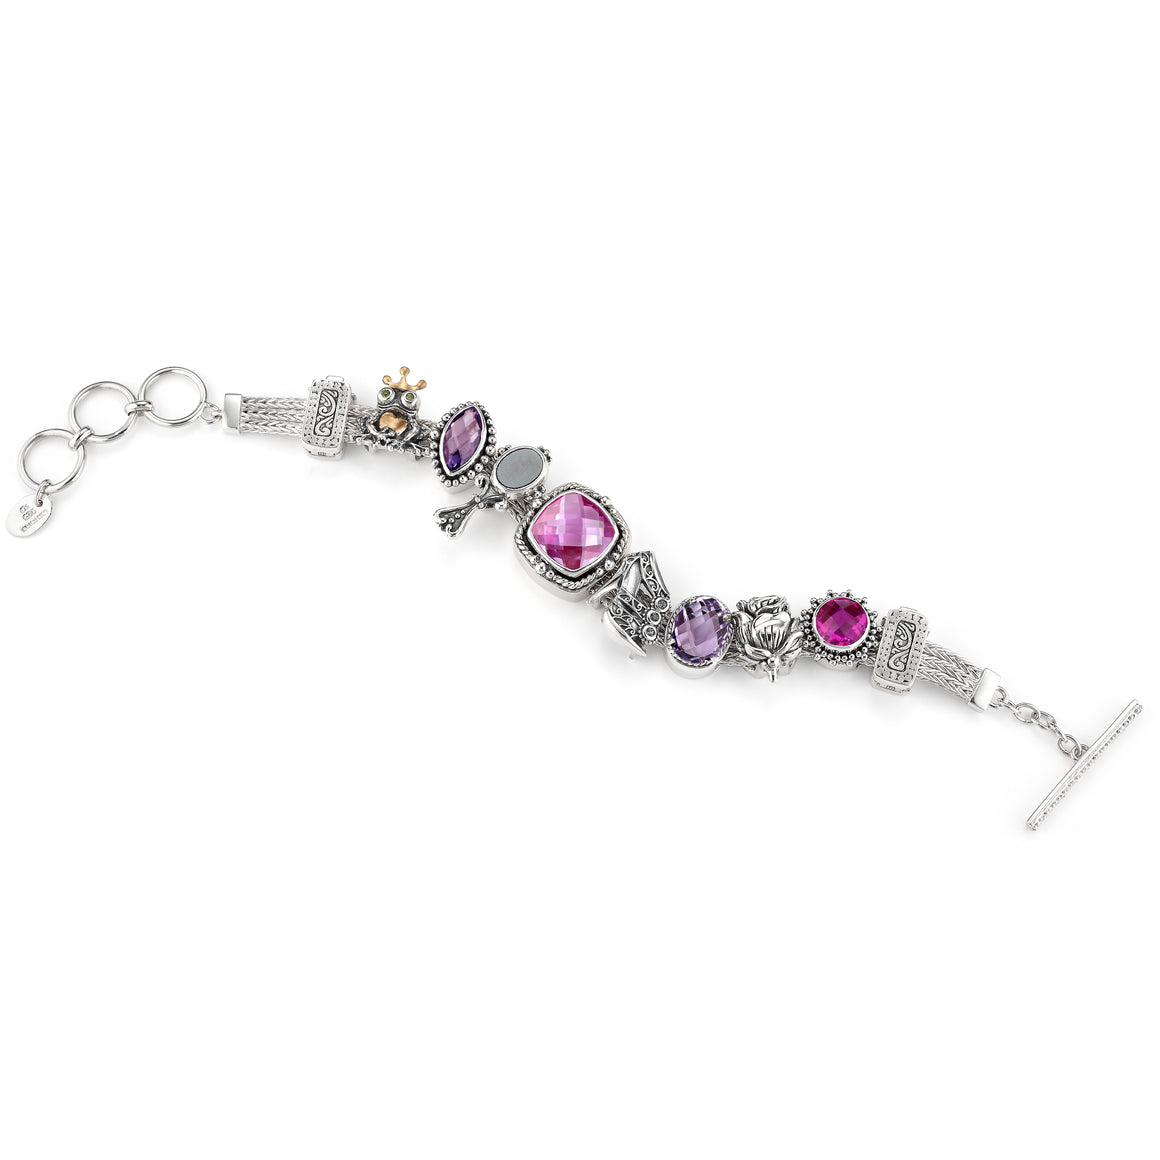 The Happily Ever After Slide Charm Bracelet from Get the Look by Lori Bonn (412204)